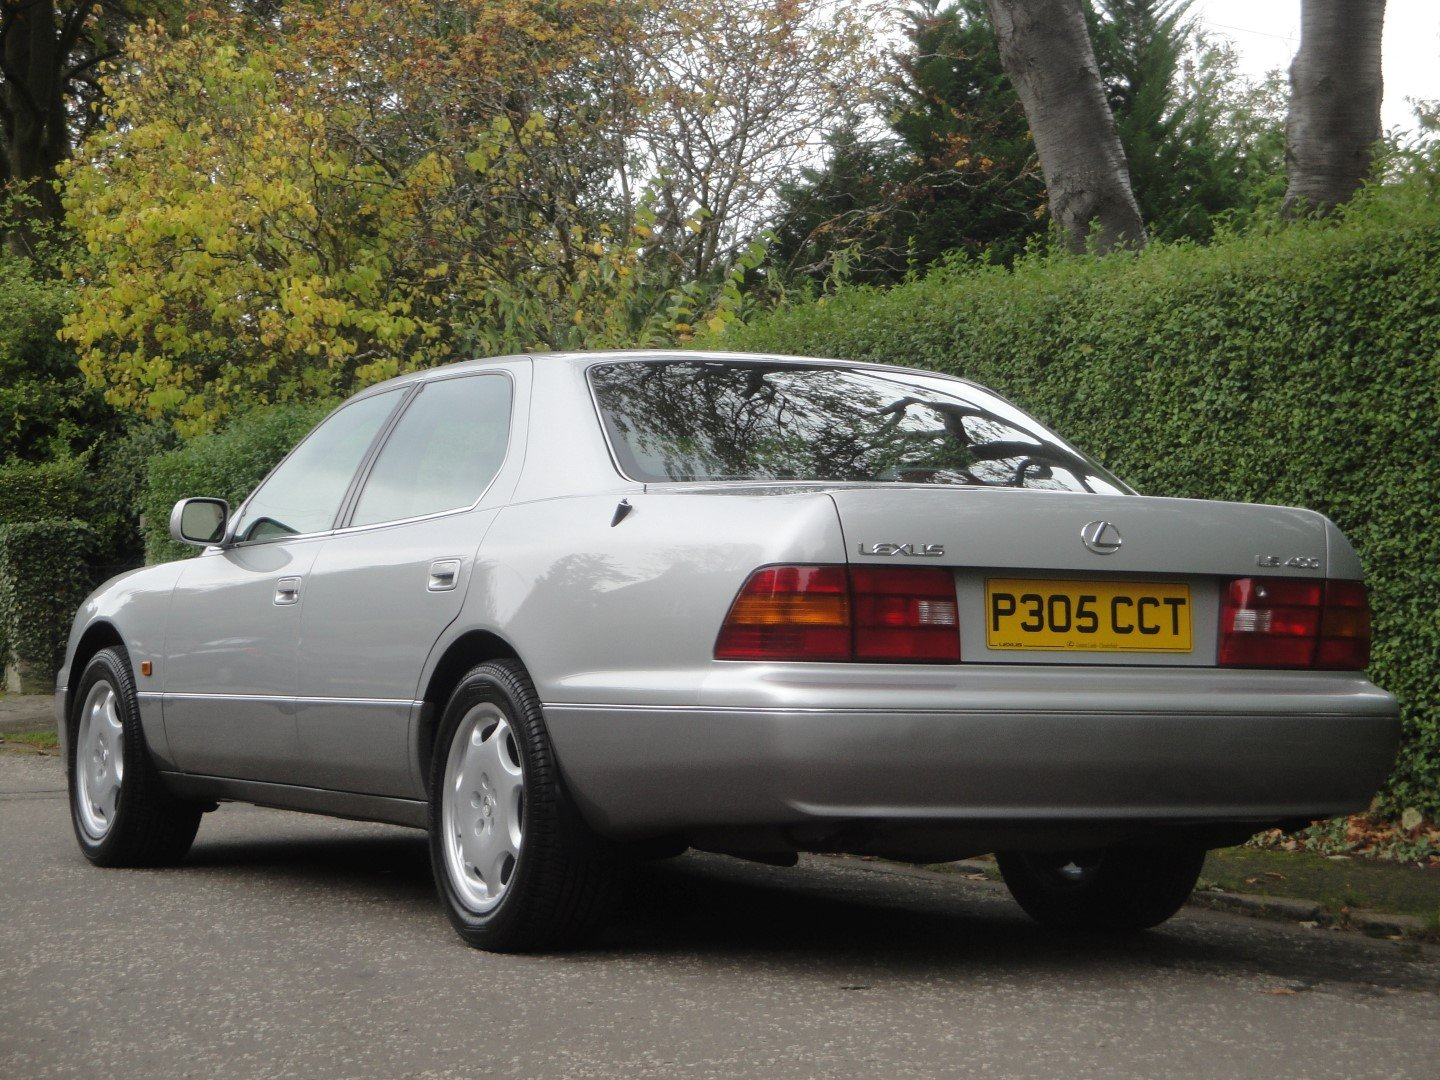 1997 Lexus LS400 Immaculate Low Mileage For Sale (picture 2 of 6)